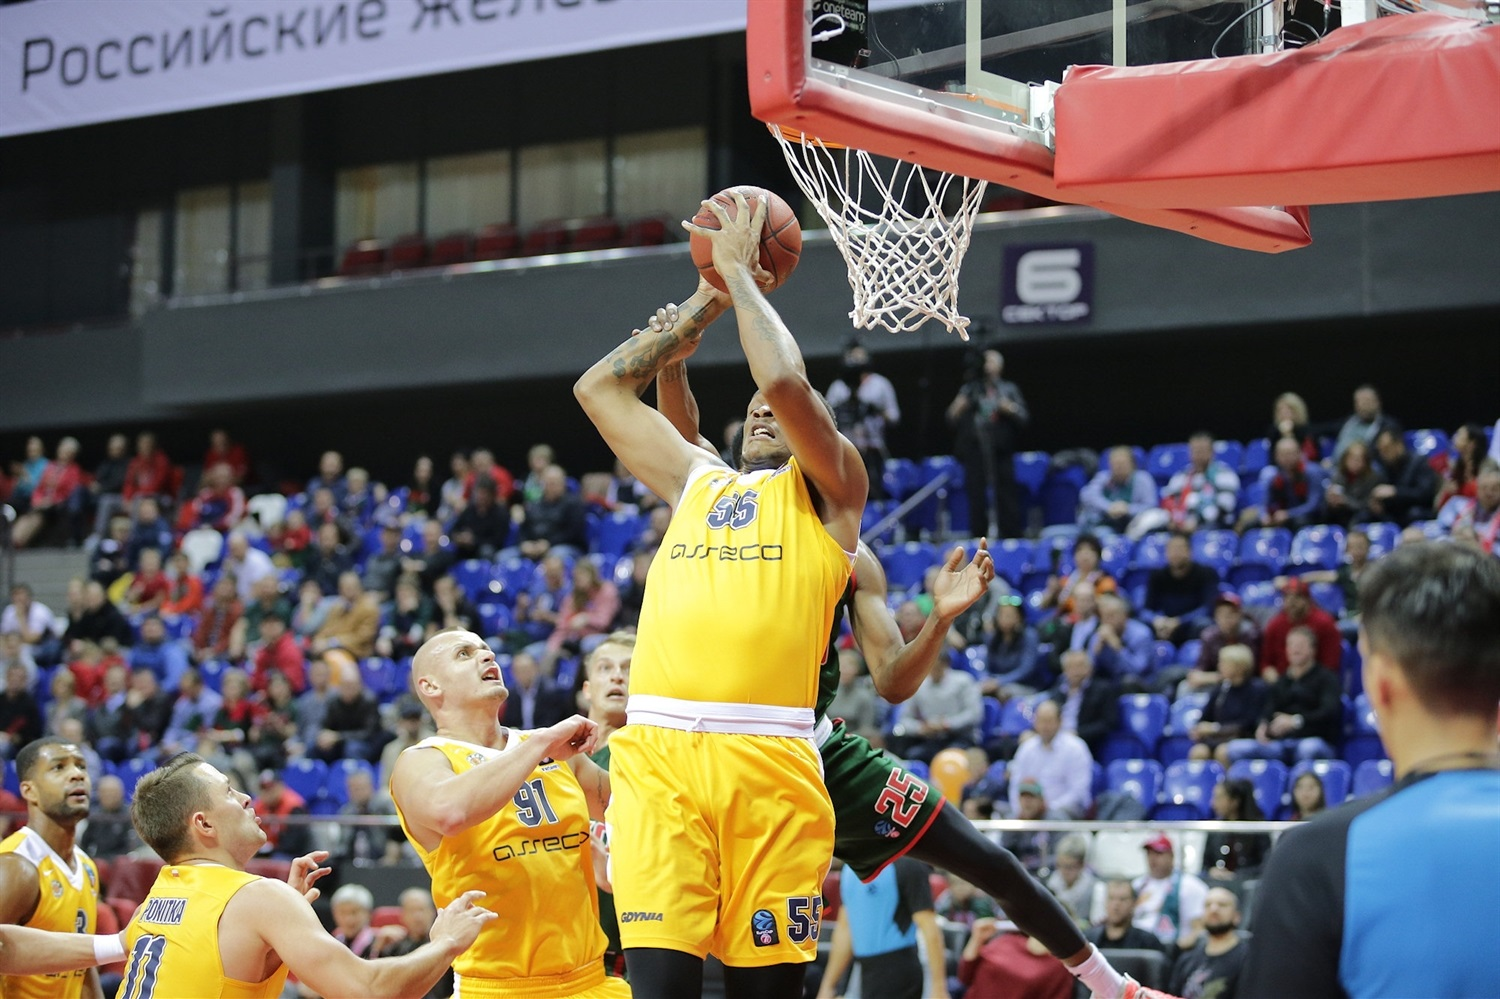 Robert Upshaw - Arka Gdynia (photo Lokomotiv) - EC18